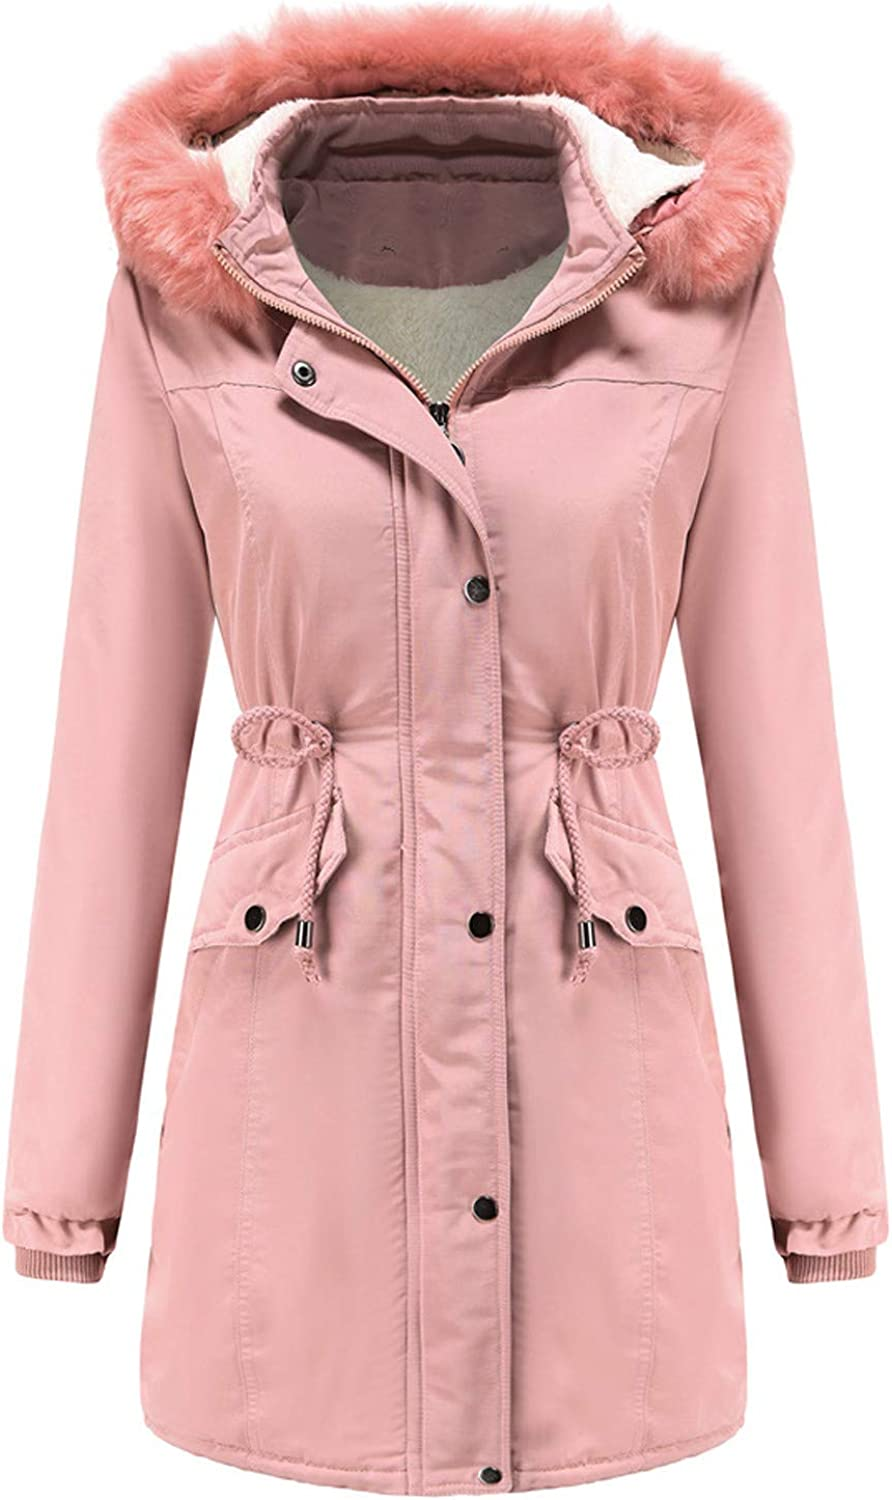 HULKAY Womens Lapel Hooded Warm Winter Coats with Faux Fur Lined Thick Outerwear Jacket with Pocket